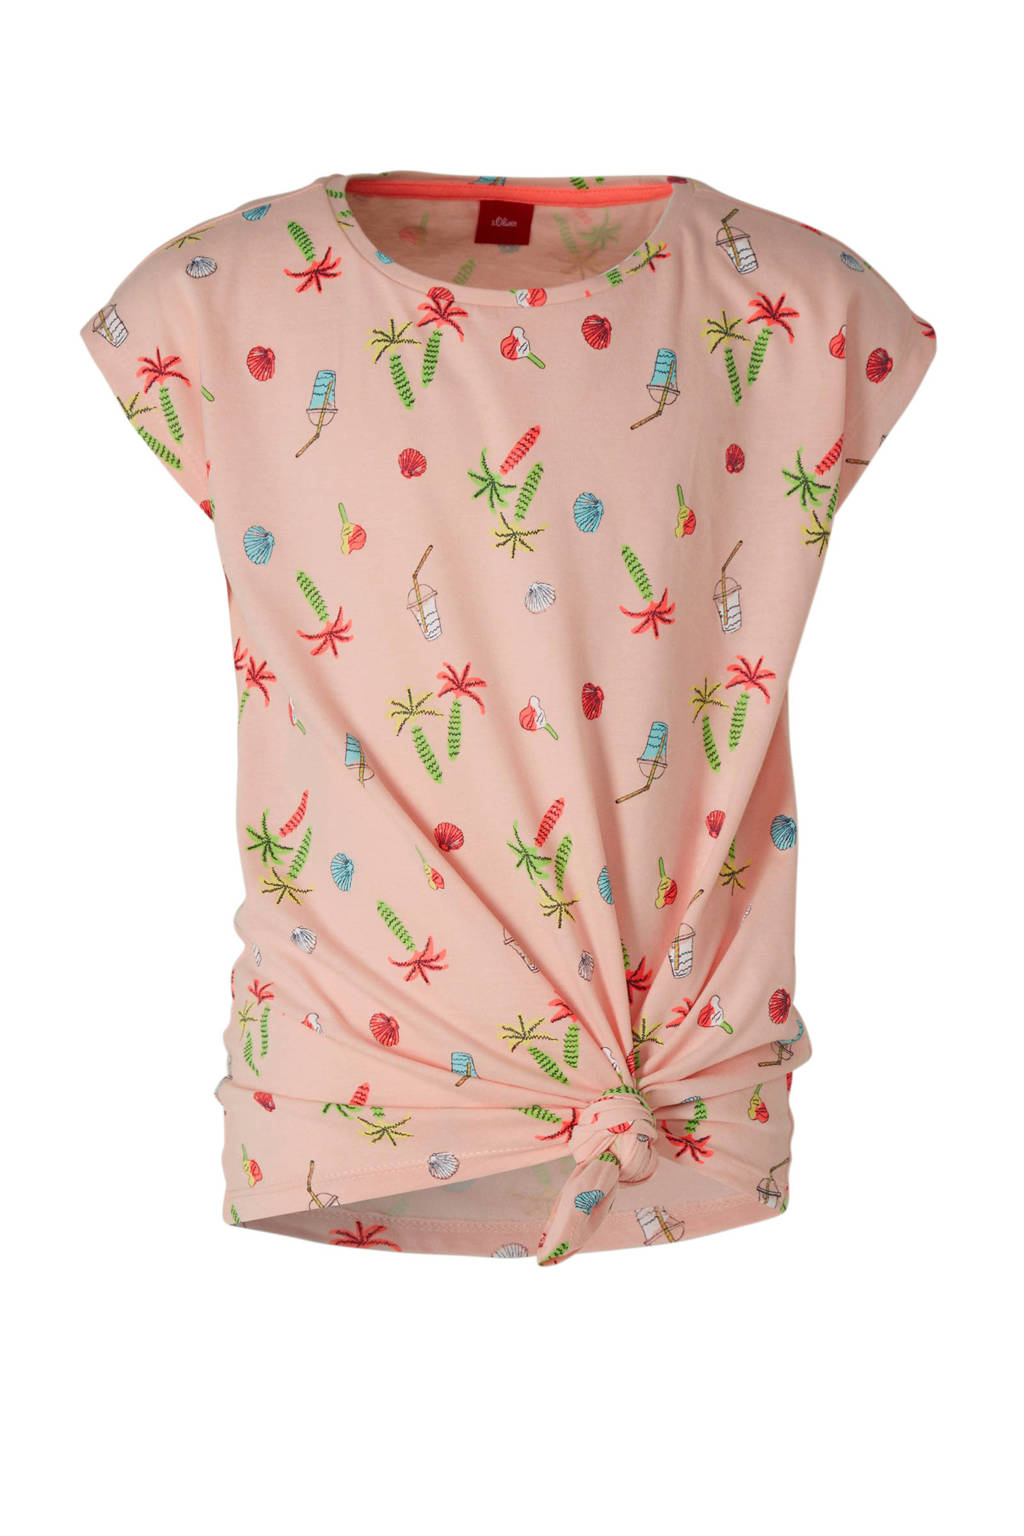 s.Oliver T-shirt met all over print en knoopdetail roze, Roze